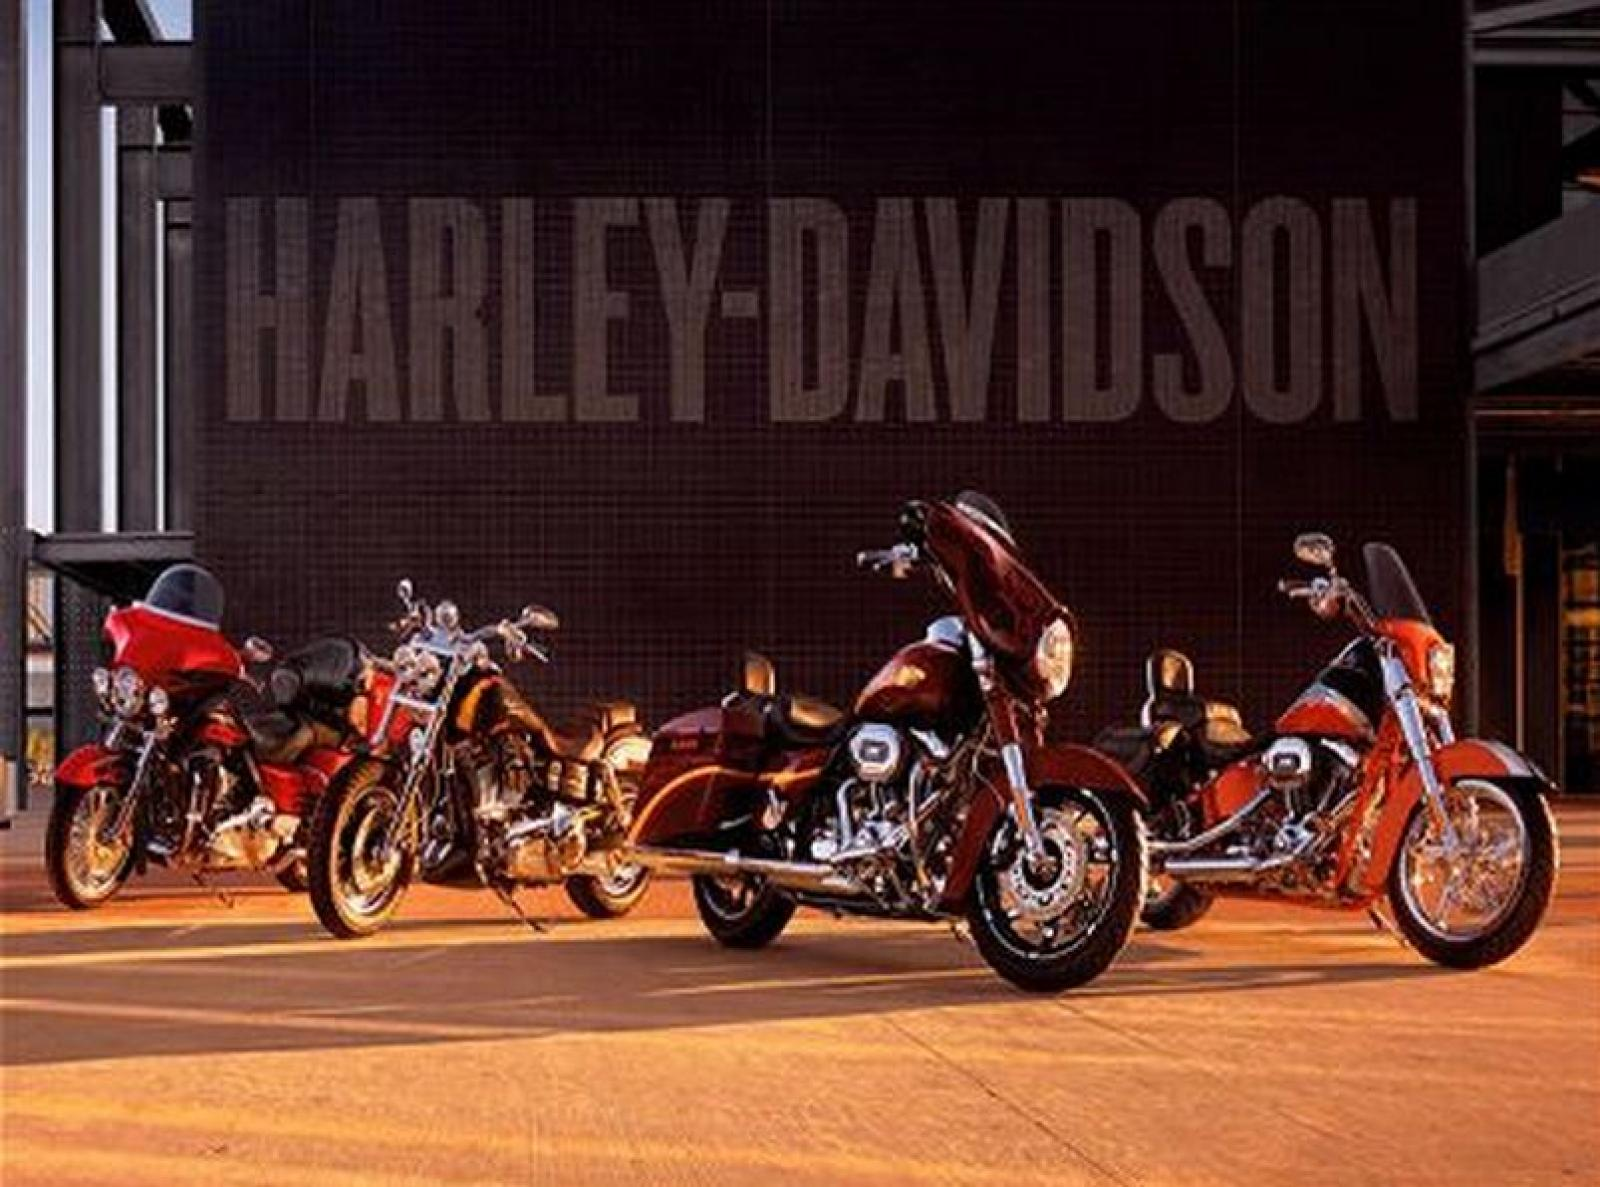 harley davidson motorcycle company Sun harley-davidson® has colorado's largest selection of new & pre-owned harley-davidson® motorcycles in denver co visit your local denver harley® dealers to check out our inventory, schedule a free test ride and find your dream bike today.